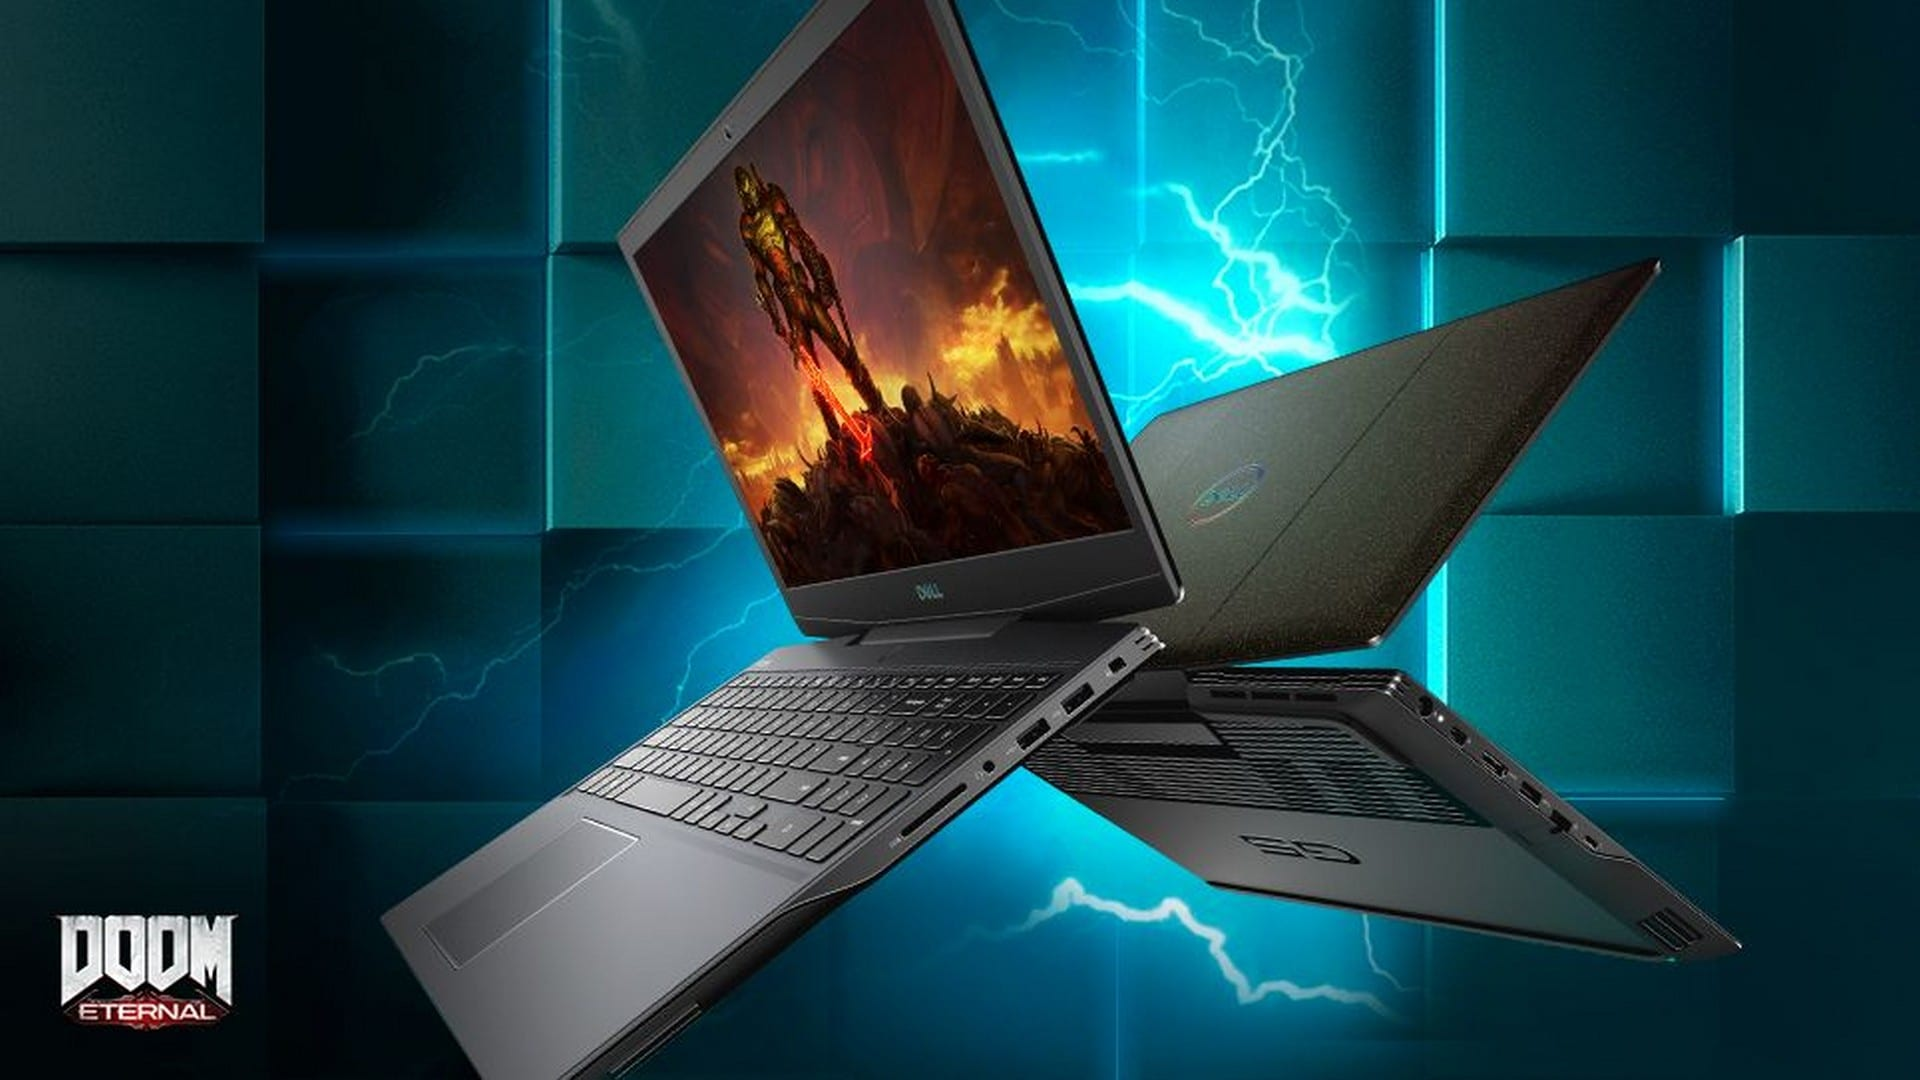 Dell G5 5500 Gaming Laptop (2020 Model) - Review | MKAU Gaming